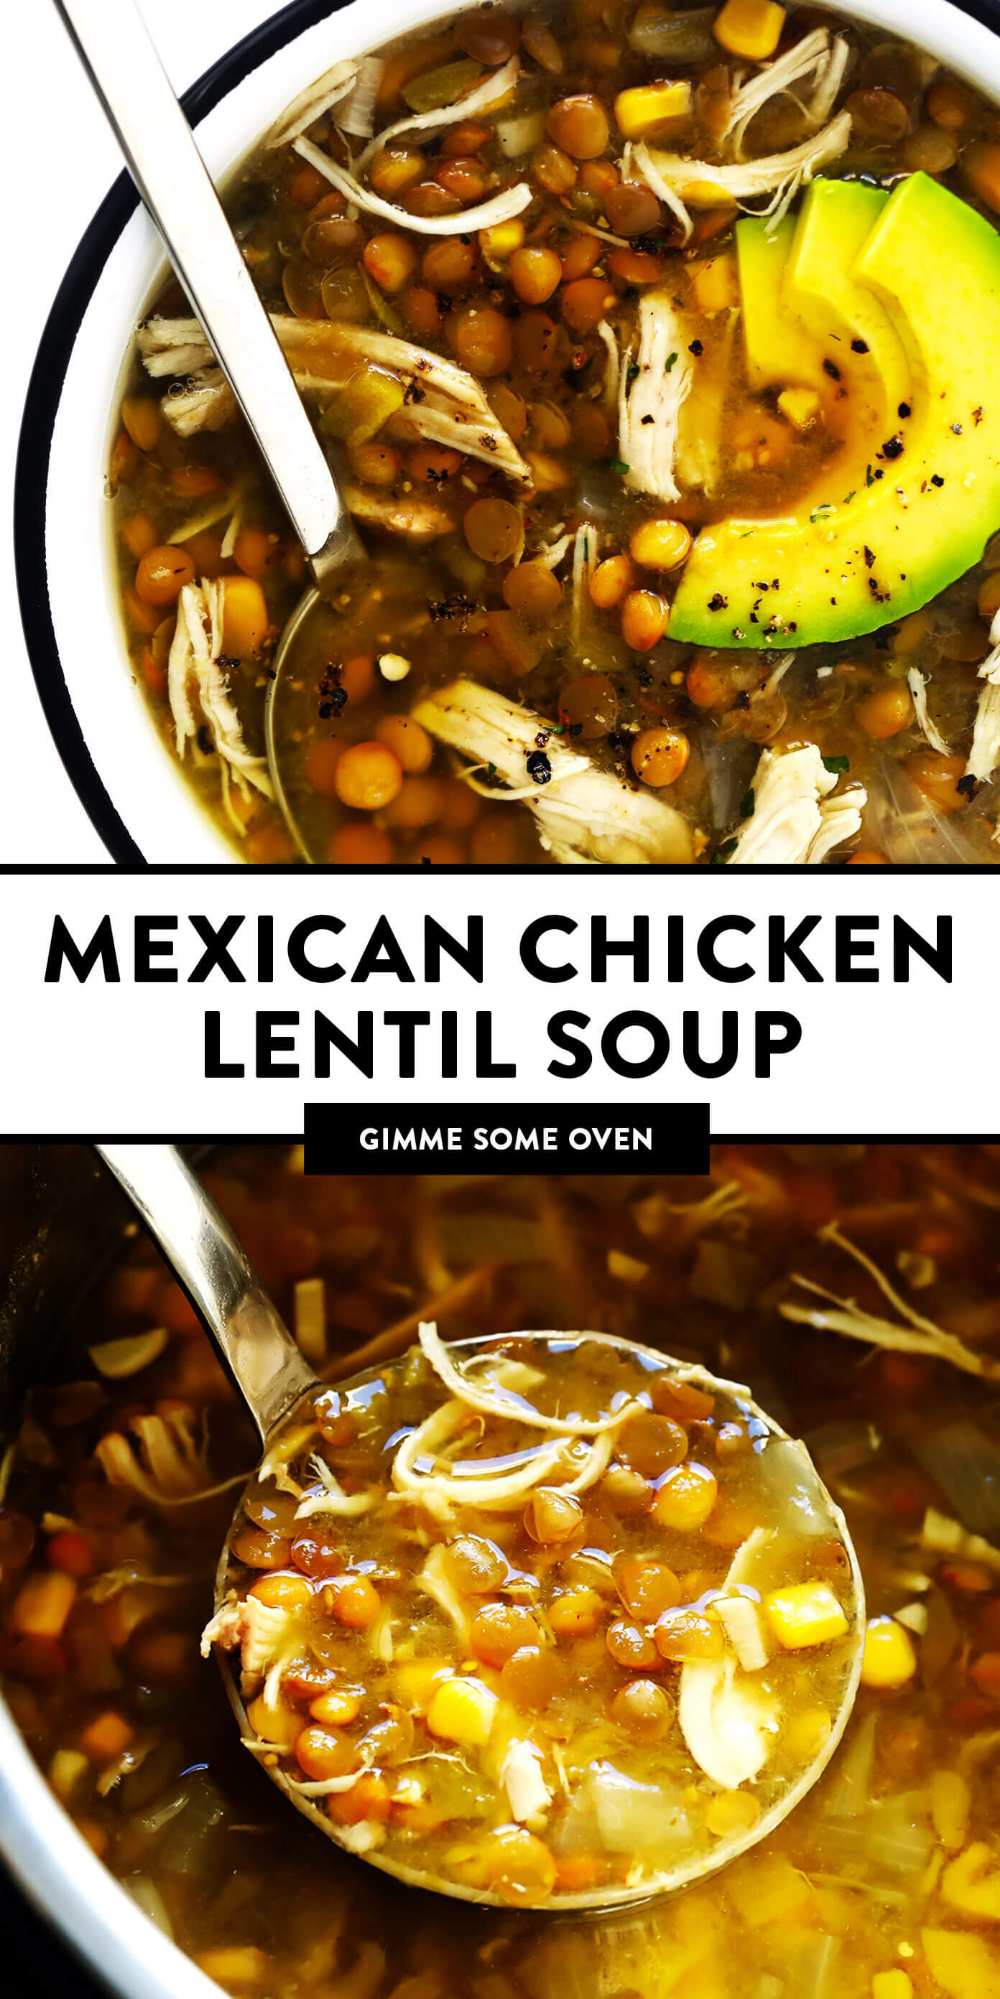 Mexican Chicken Lentil Soup Gimme Some Oven Recipe Chicken Lentil Soup Chicken Lentil Lentil Soup Recipes